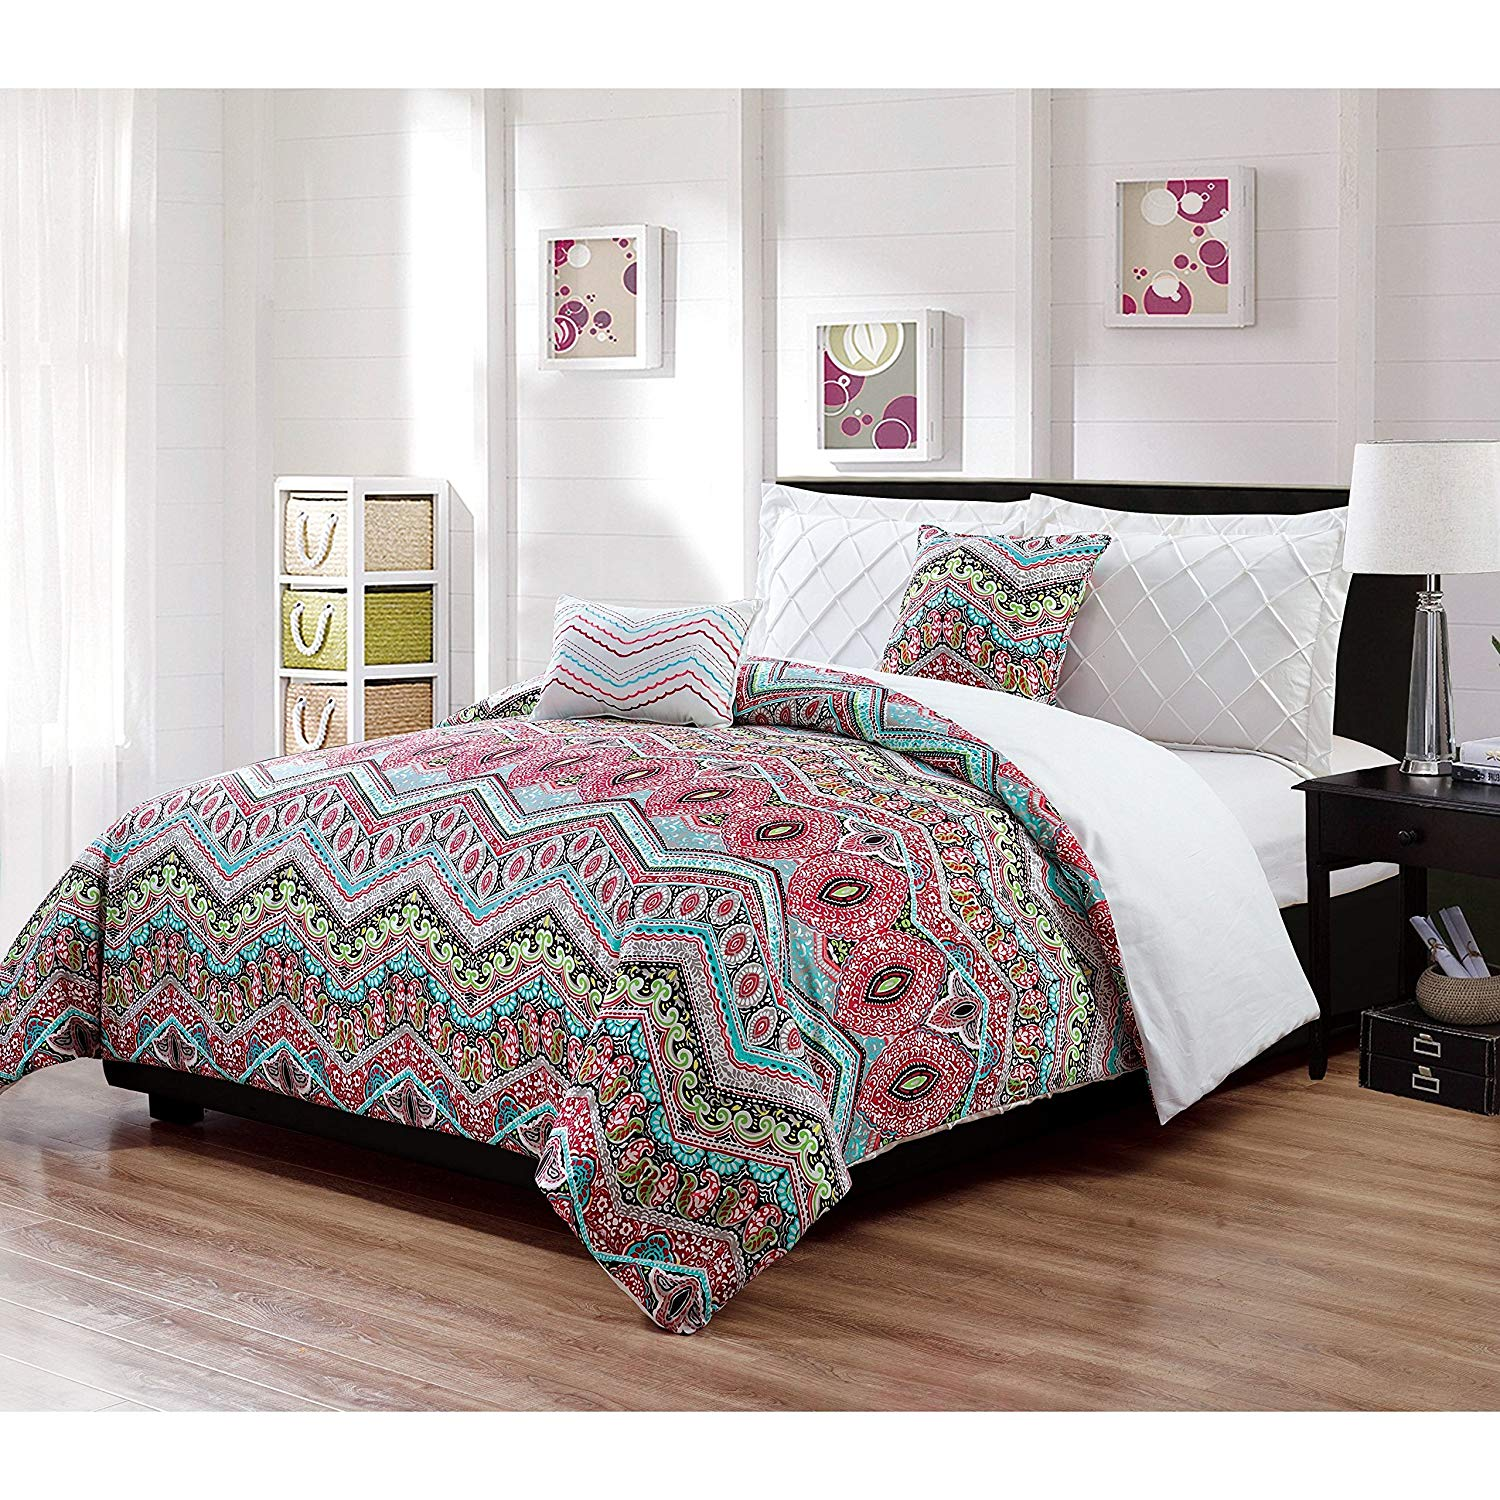 5 Piece Girls Blue Green Pink Chevron Floral Themed Comforter Queen Set, Multi Color Zig Zag Paisley Floral Pattern Bedding, Reverse White Diamond Check Pin Tuck Pinch Pleat Textured, Microfiber